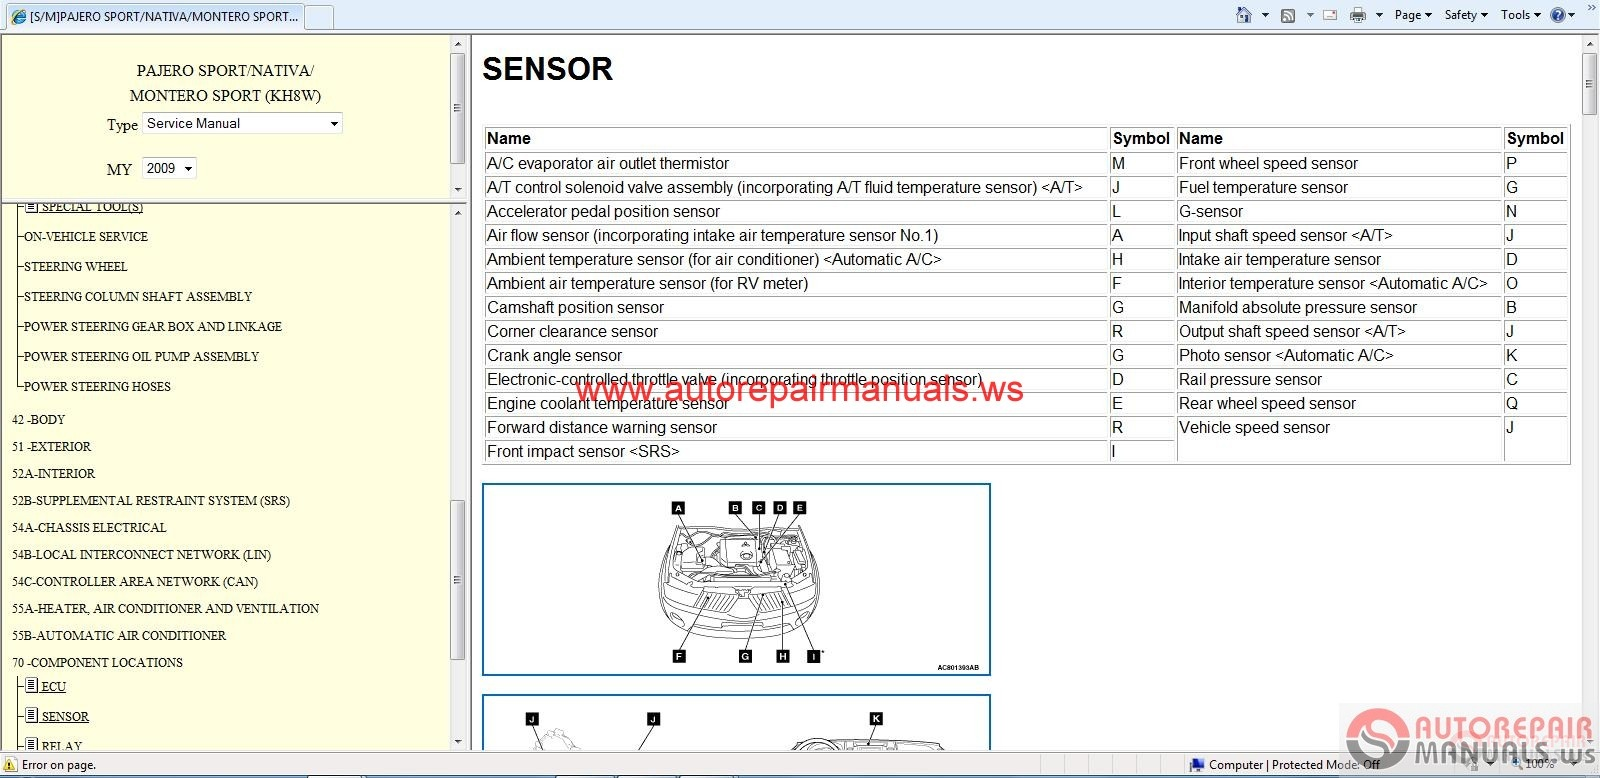 mitsubishi mirage wiring diagram mitsubishi inspiring car wiring mirage speakers wiring diagram mirage automotive wiring diagram on mitsubishi mirage wiring diagram